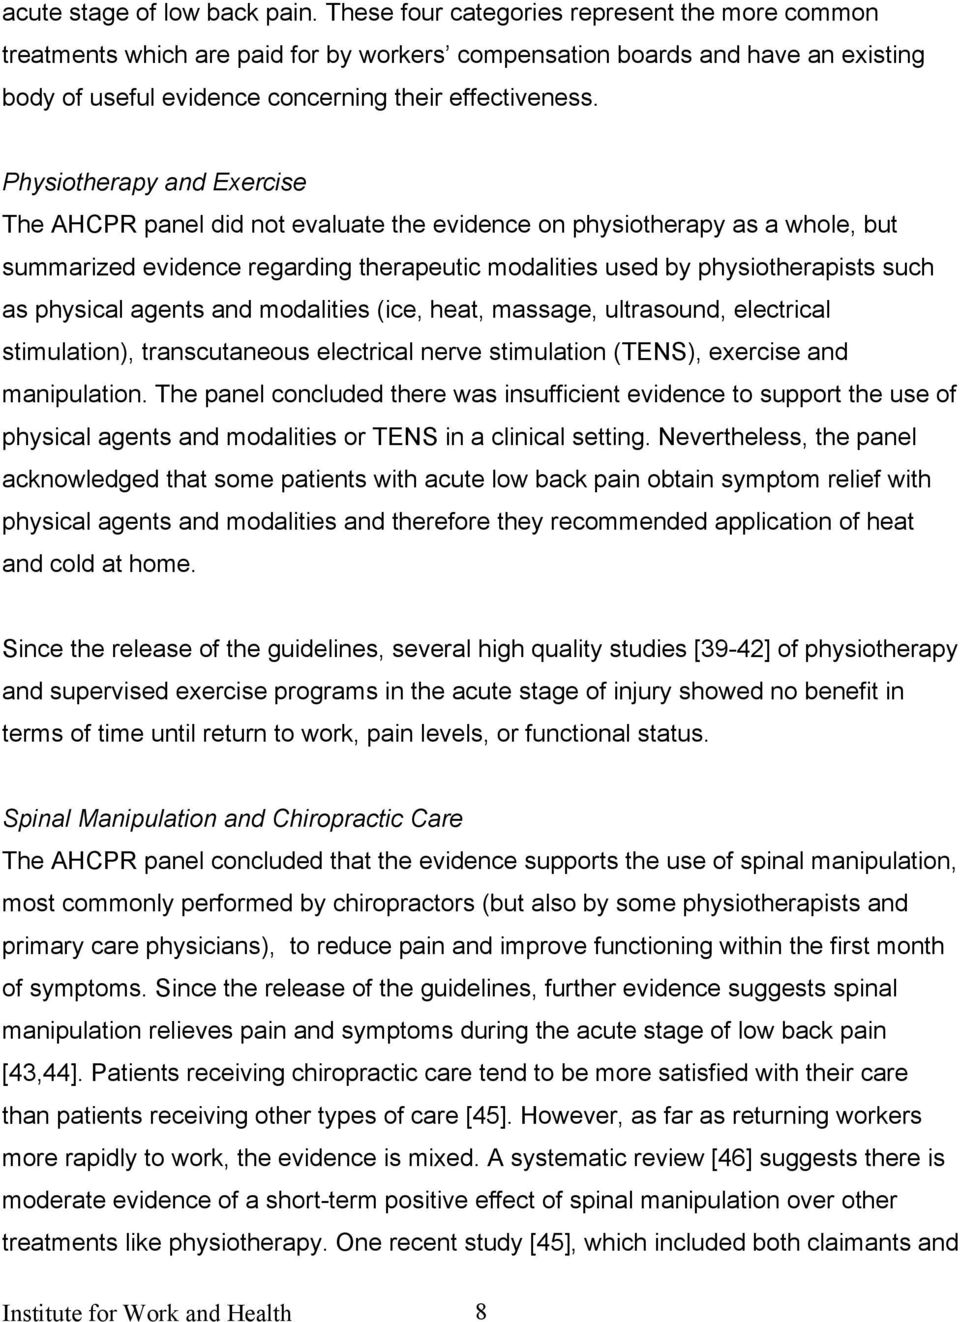 Physiotherapy and Exercise The AHCPR panel did not evaluate the evidence on physiotherapy as a whole, but summarized evidence regarding therapeutic modalities used by physiotherapists such as